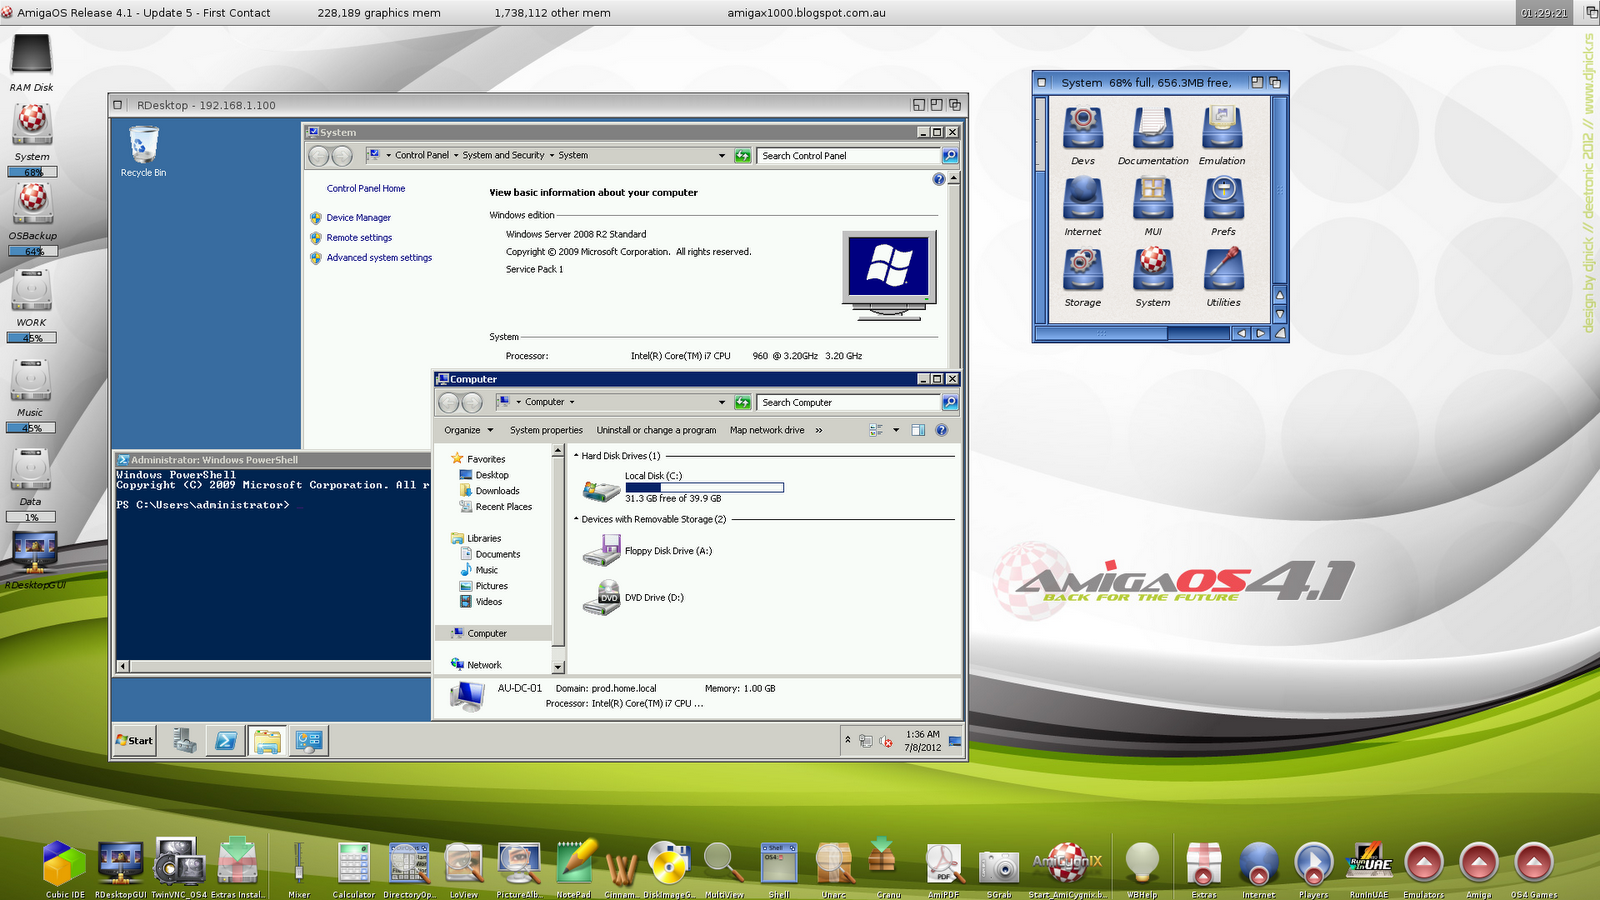 AmigaOne: How to use Remote Desktop with Windows 7 and Server 2008